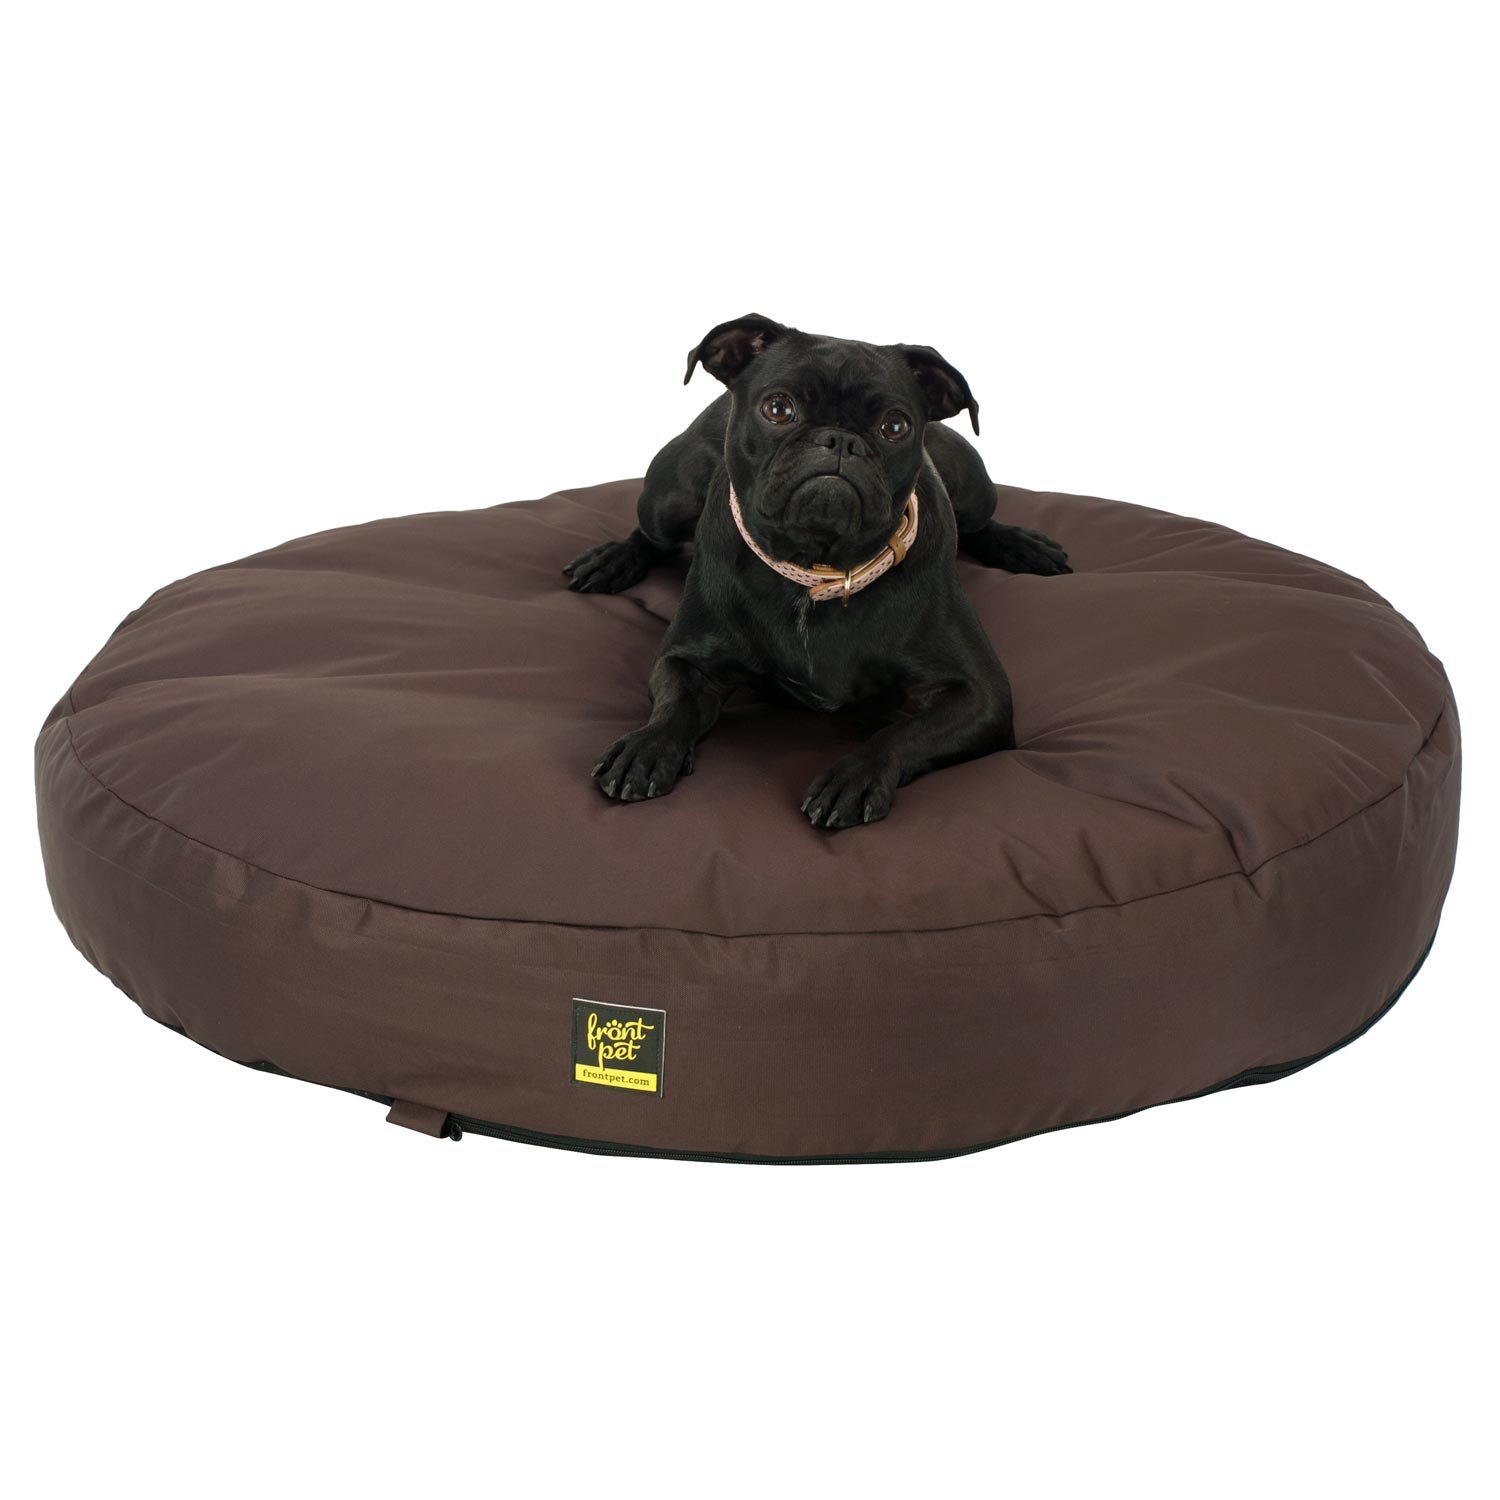 ideas comfort clean chew pet beds decor dogs den for with dog black that deep and bed supplies indestructible